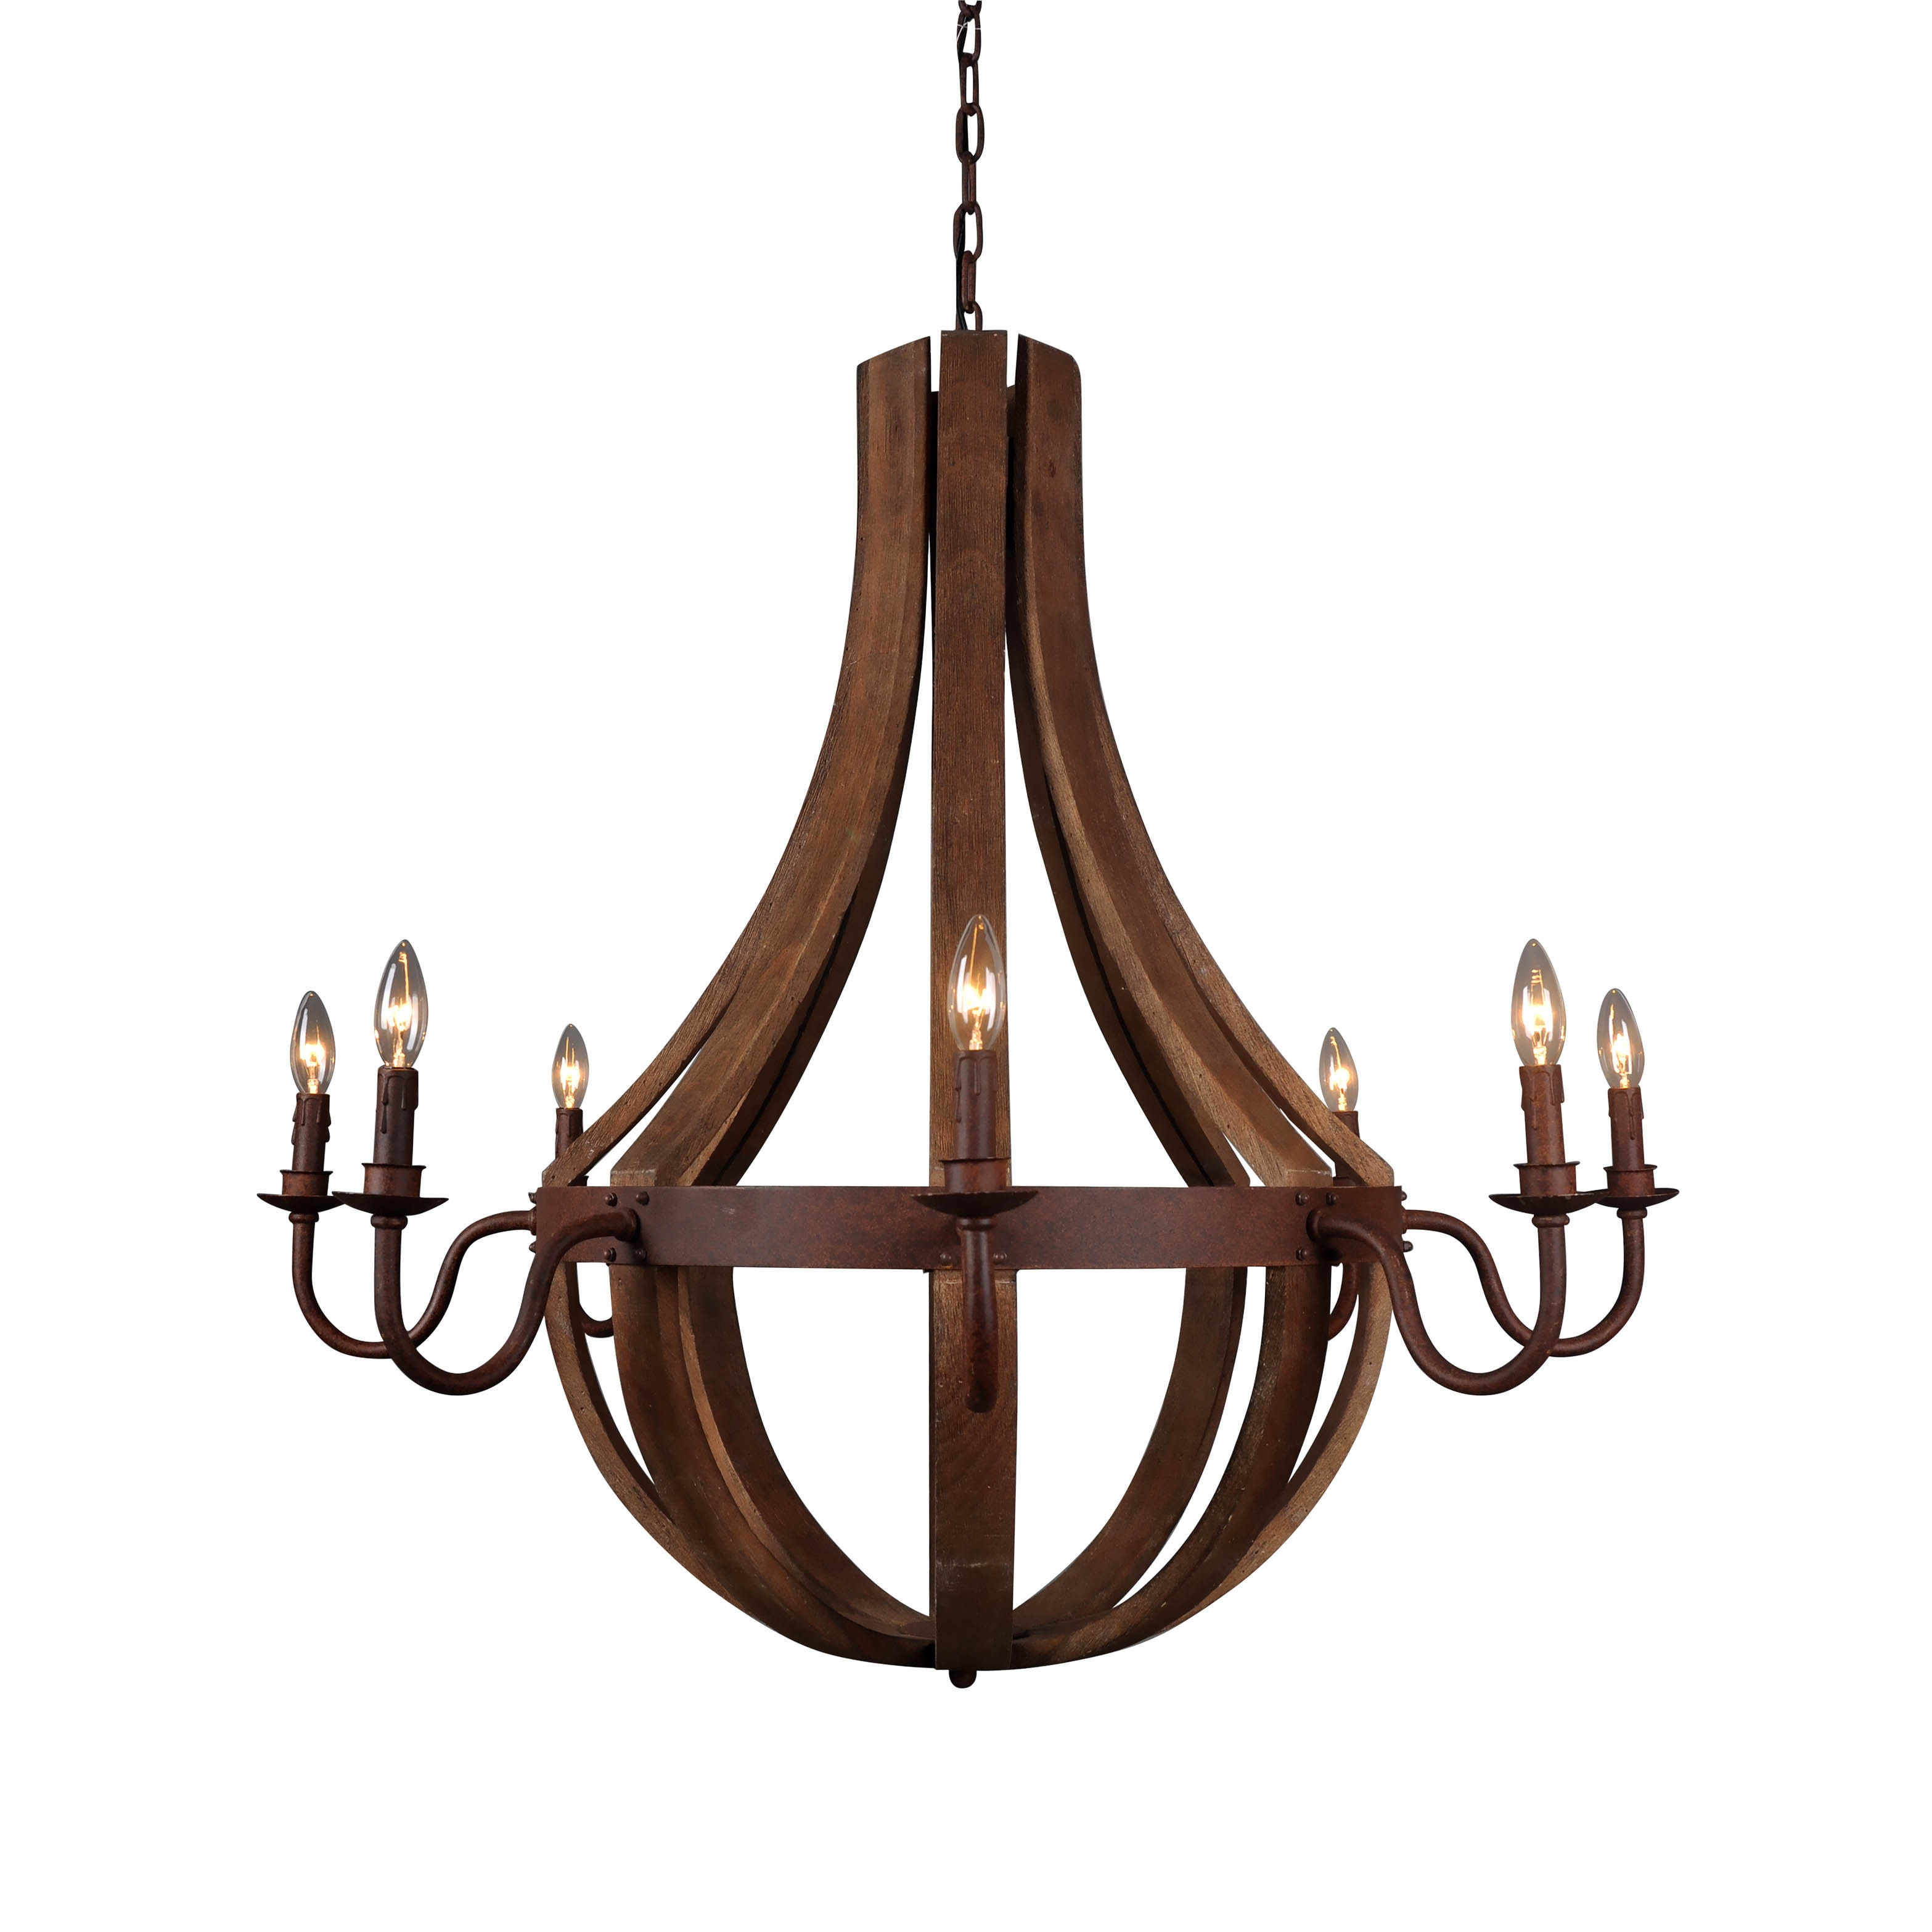 Aurelle Home Reclaimed Wood and Cast Iron Barrel Chandelier Free